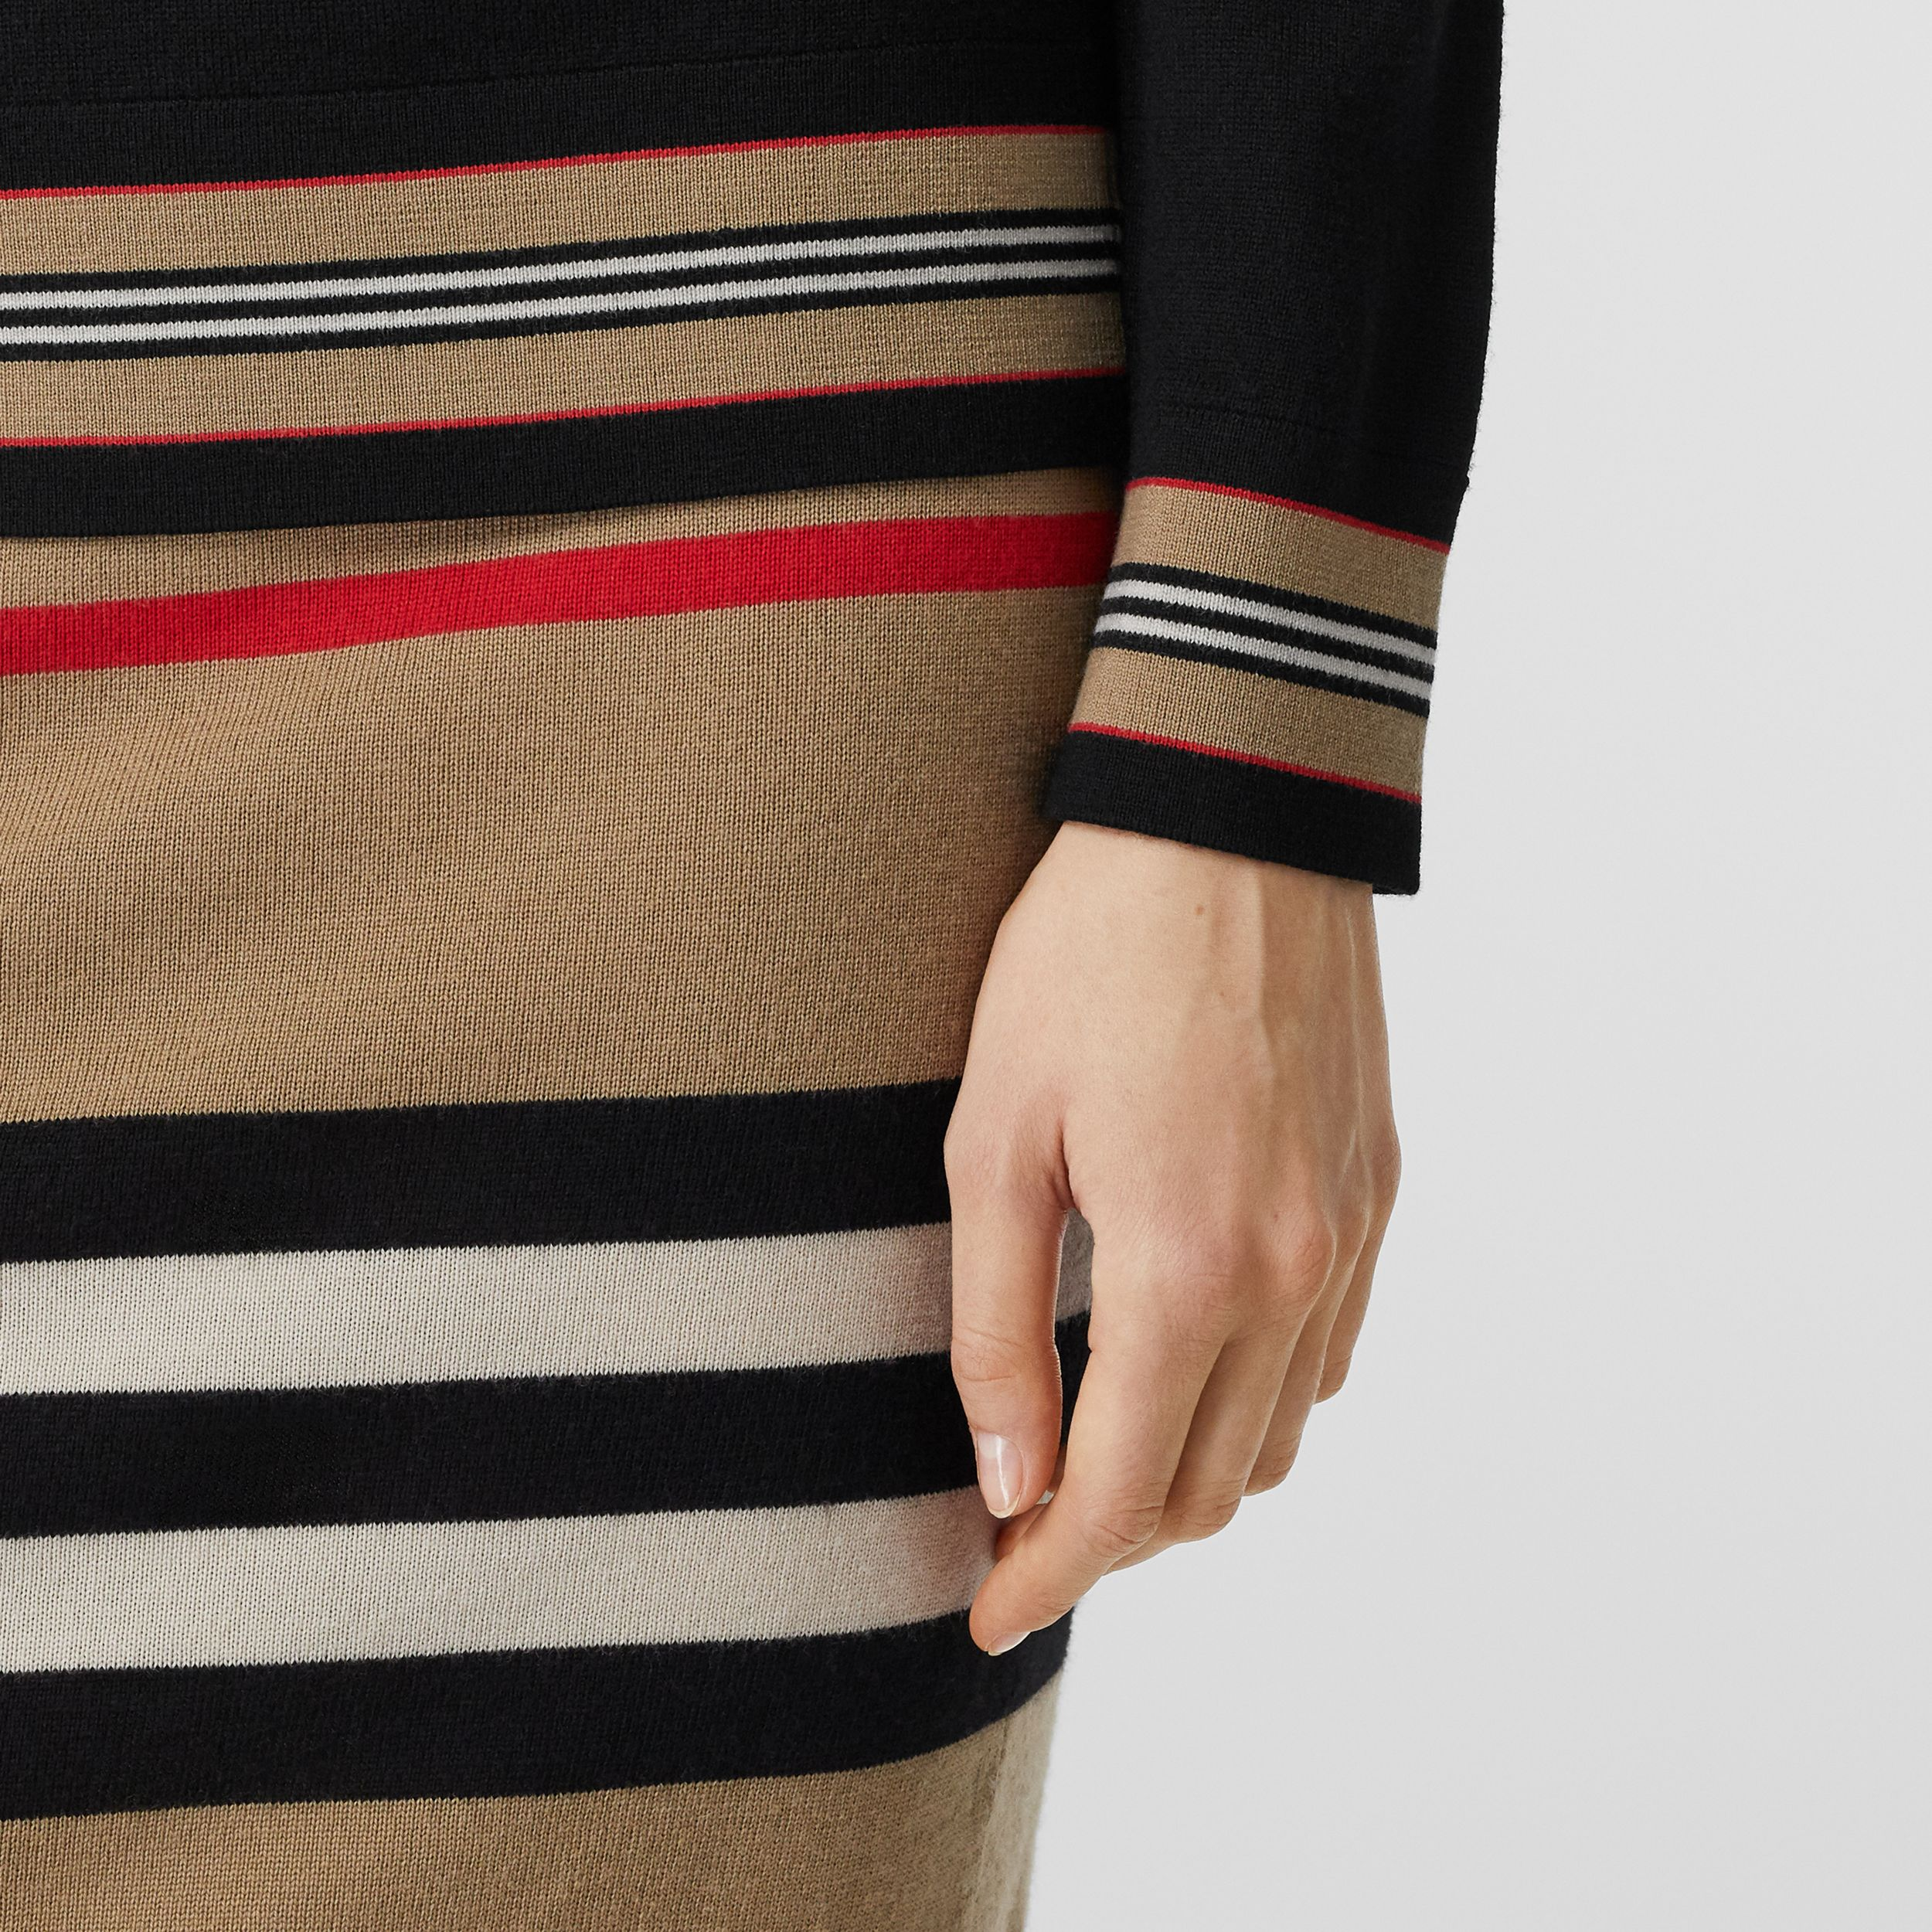 Icon Stripe Detail Merino Wool Sweater in Black - Women | Burberry - 2